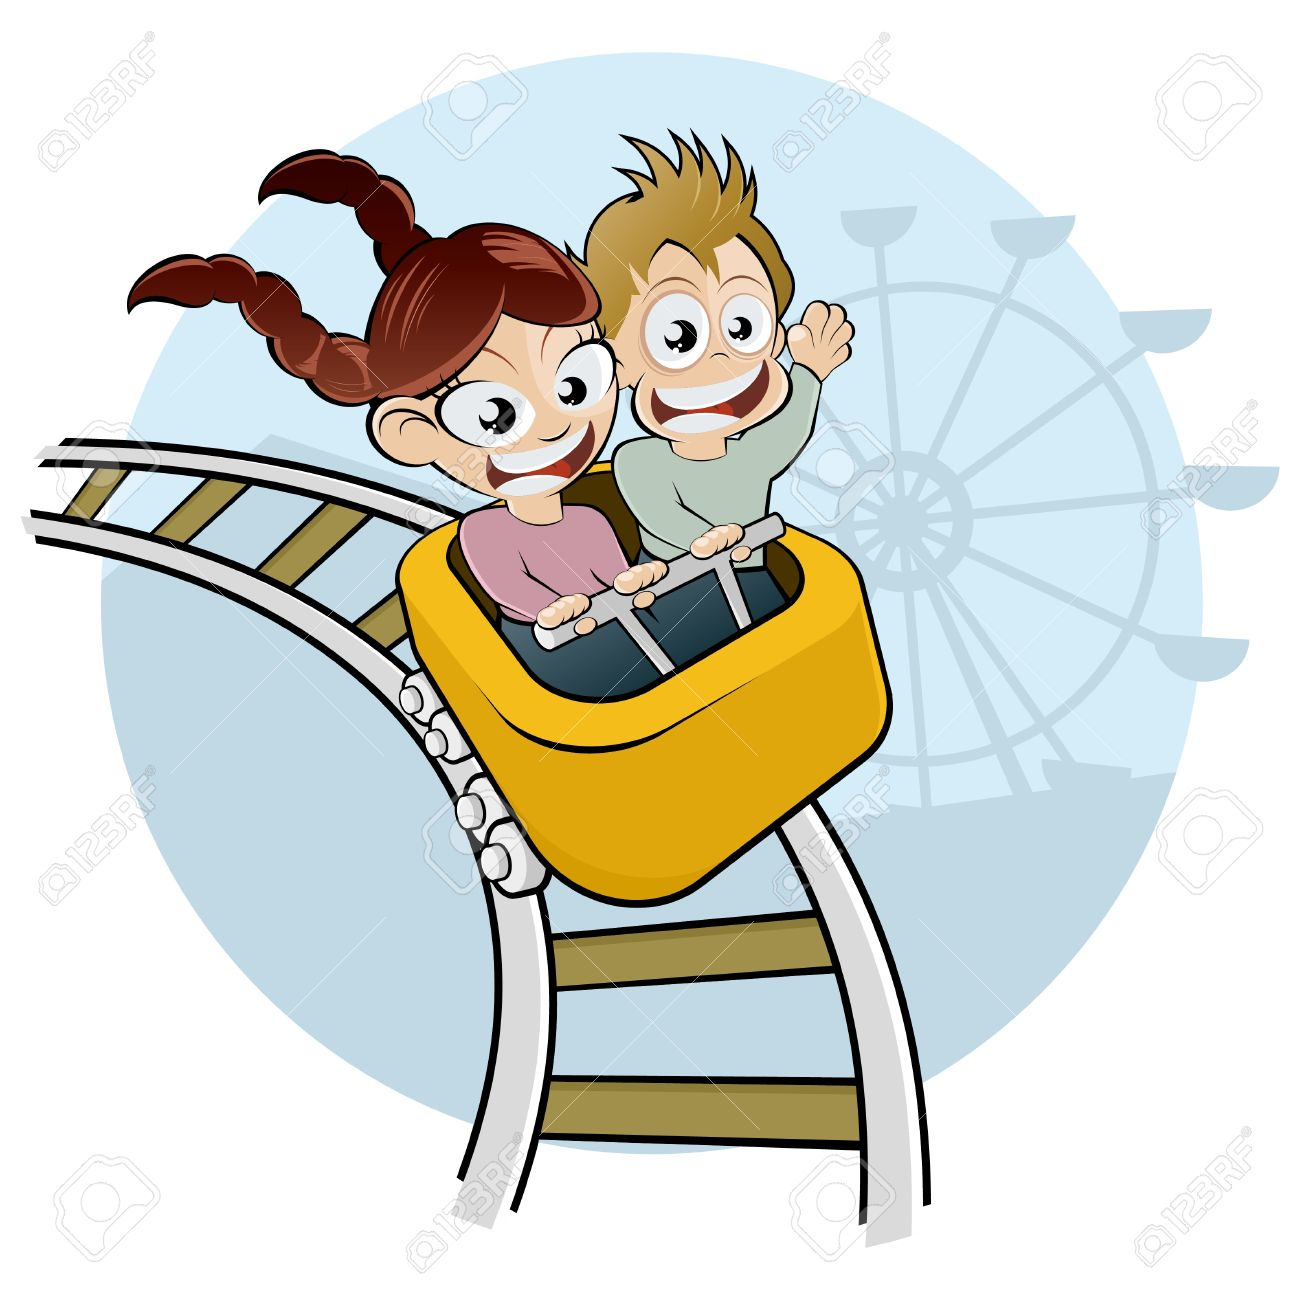 cartoon kids on rollercoaster royalty free cliparts vectors and rh 123rf com roller coaster clipart free roller coaster clipart cartoon